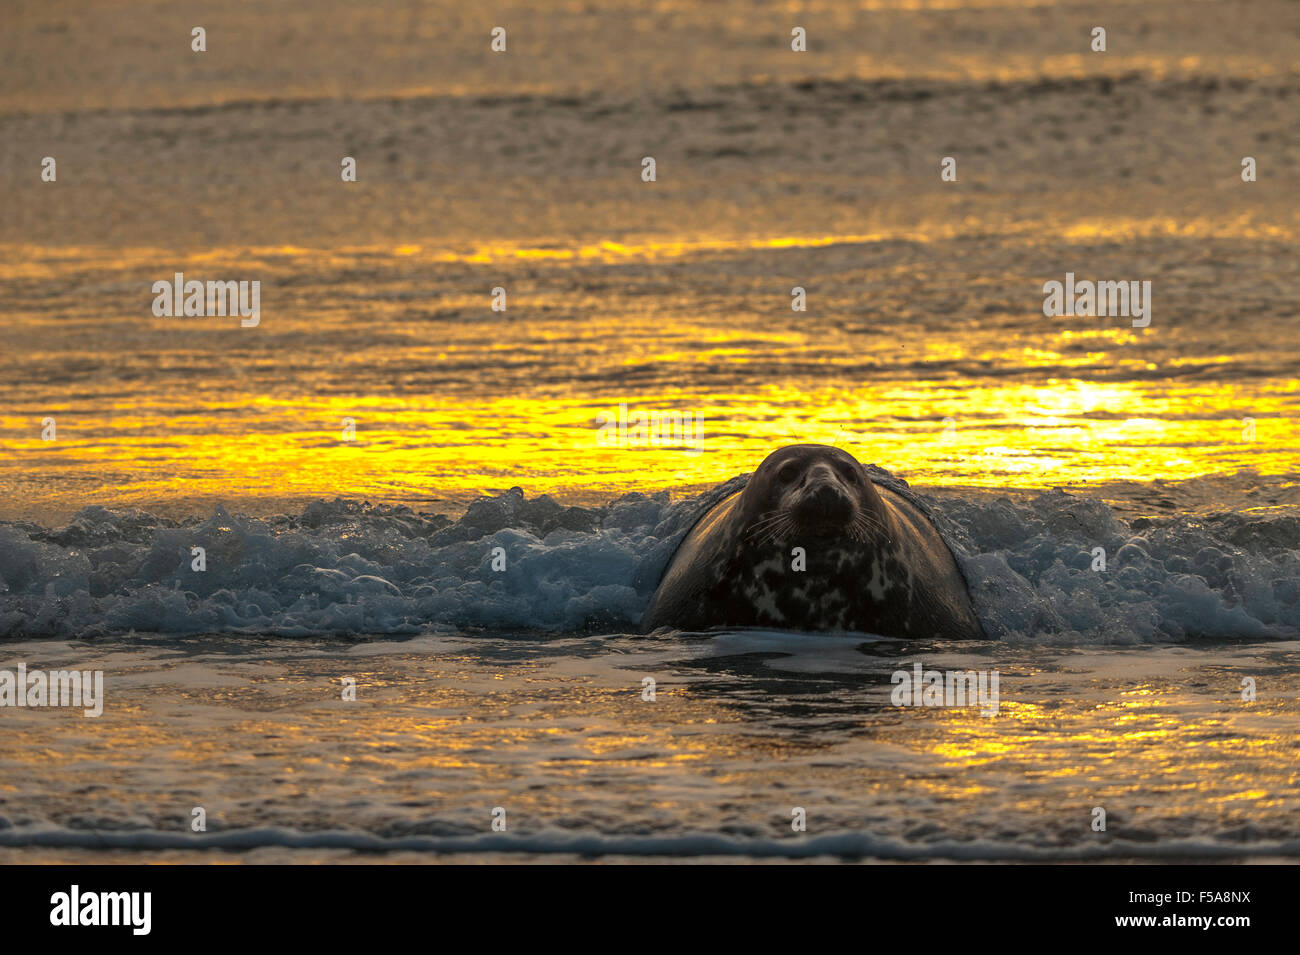 Grey seal (Halichoerus grypus) in water at sunrise, Heligoland, Schleswig-Holstein, Germany - Stock Image